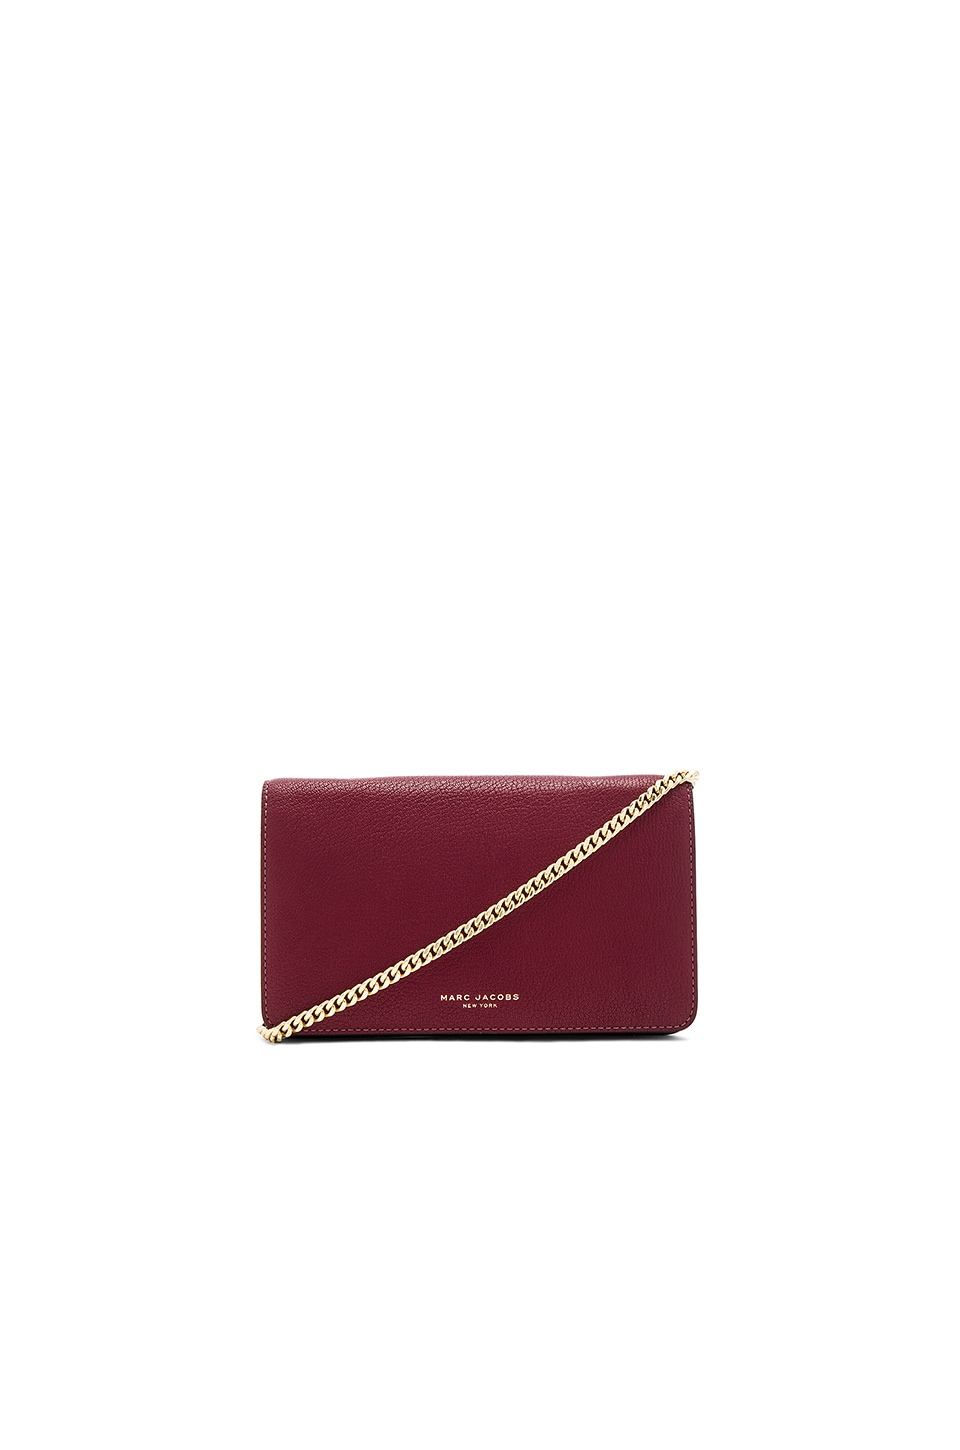 Marc Jacobs Perry Wallet on Chain in Dark Cherry